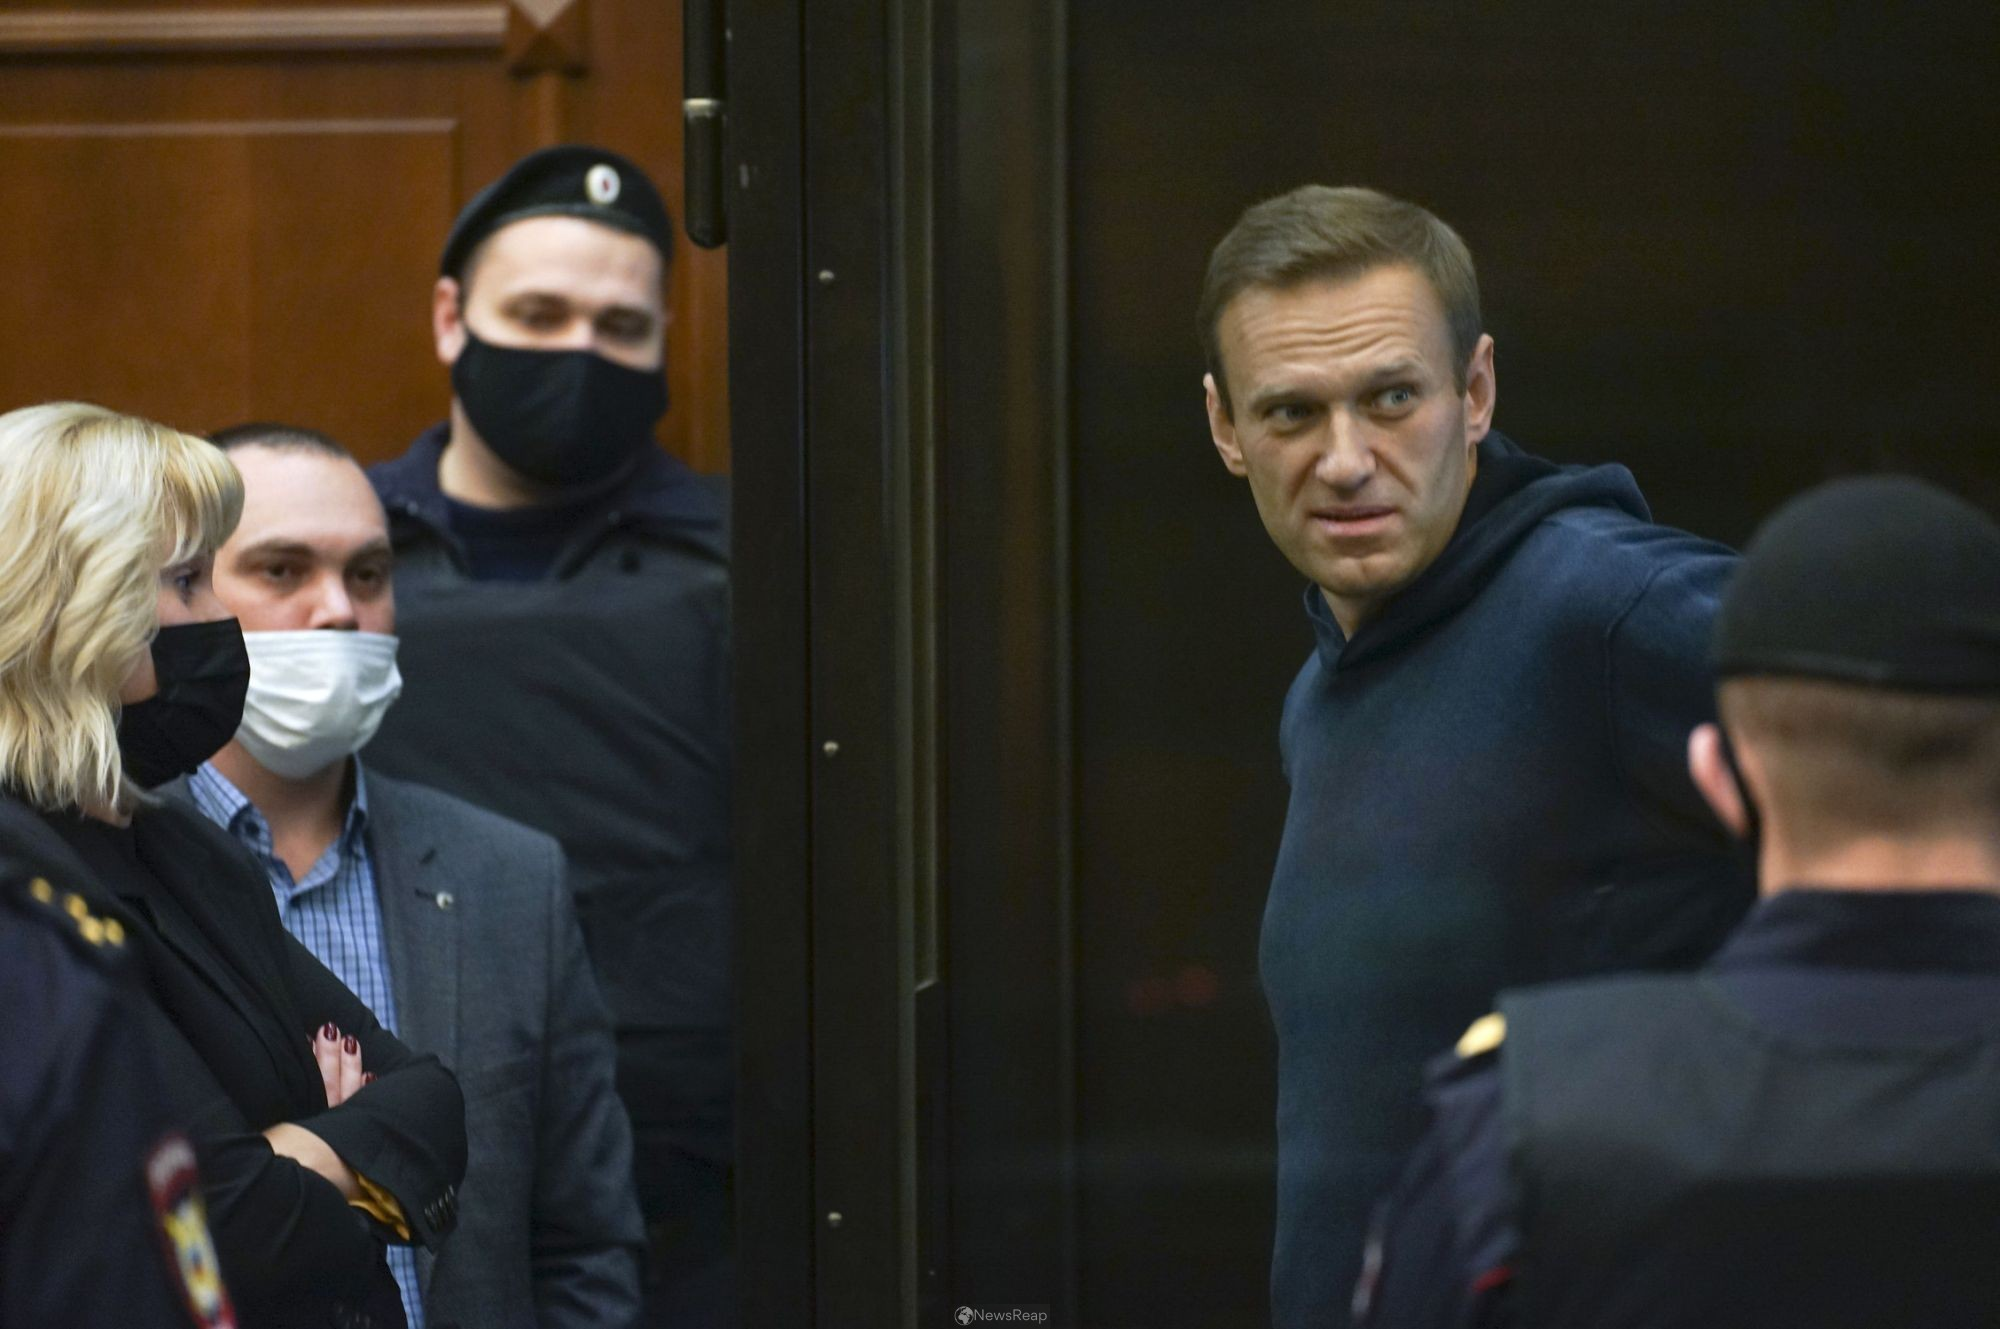 Kremlin critic Alexei Navalny says he is at strict prison camp outside Moscow